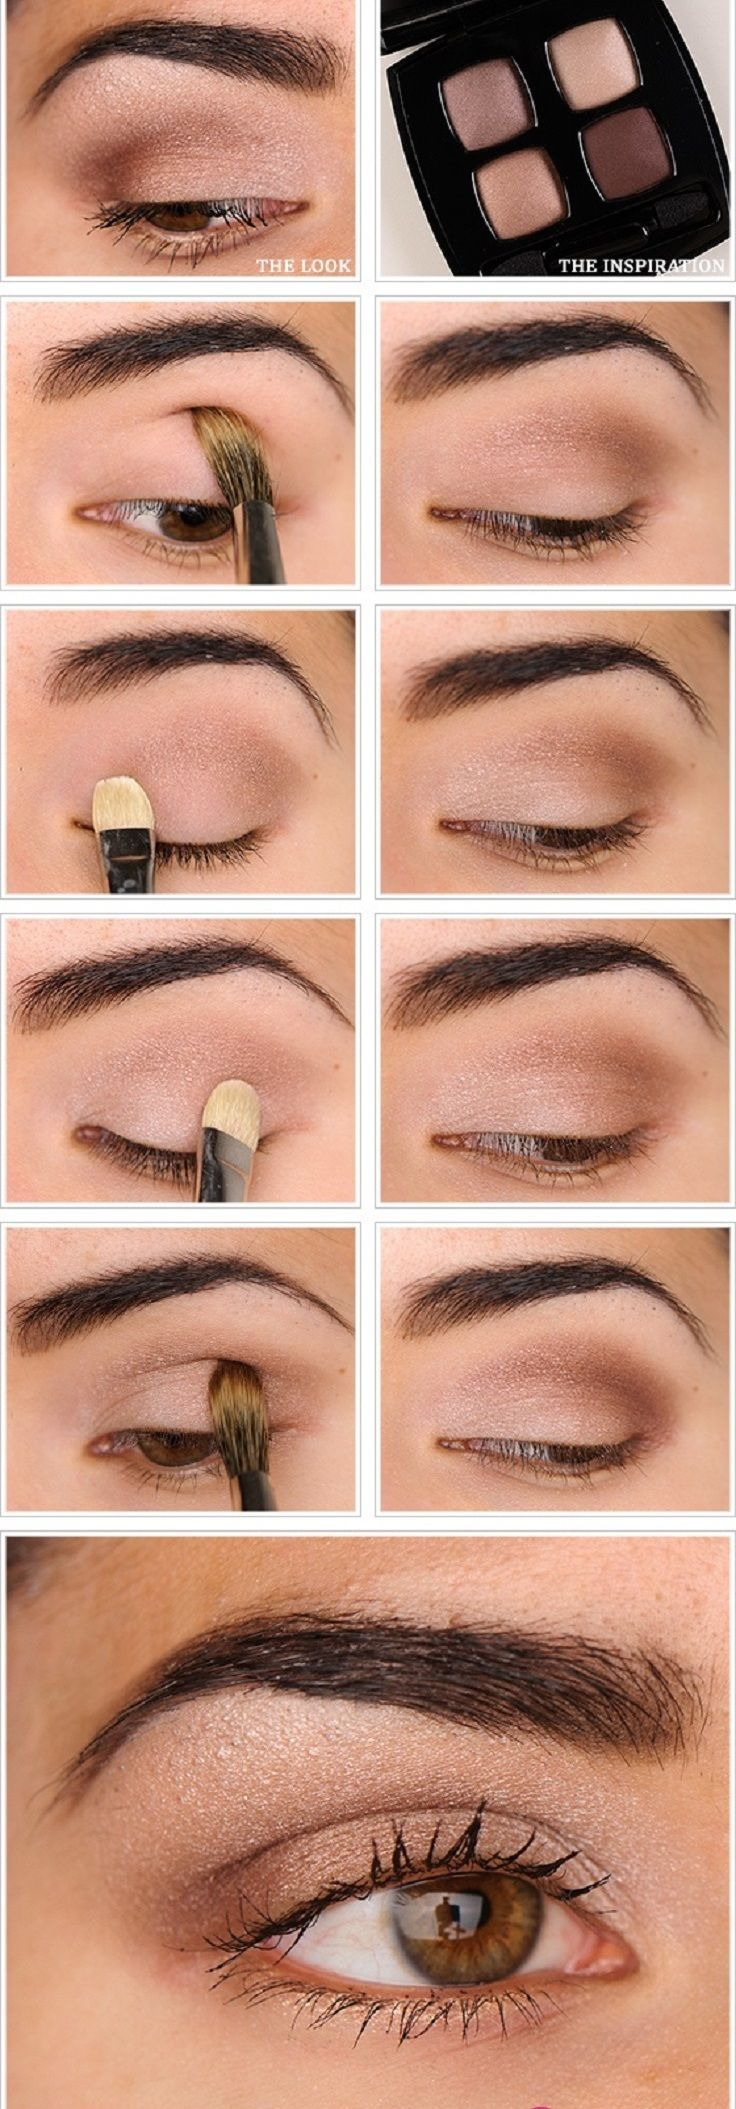 Top 10 Tutorials for Natural Eye Make-Up - Top Inspired Have you seen the new promotion Real Techniques brushes makeup -$10 http://youtu.be/Ekd8siFfdNA #realtechniques #realtechniquesbrushes #makeup #makeupbrushes #makeupartist #brushcleaning #brushescleaning #brushes